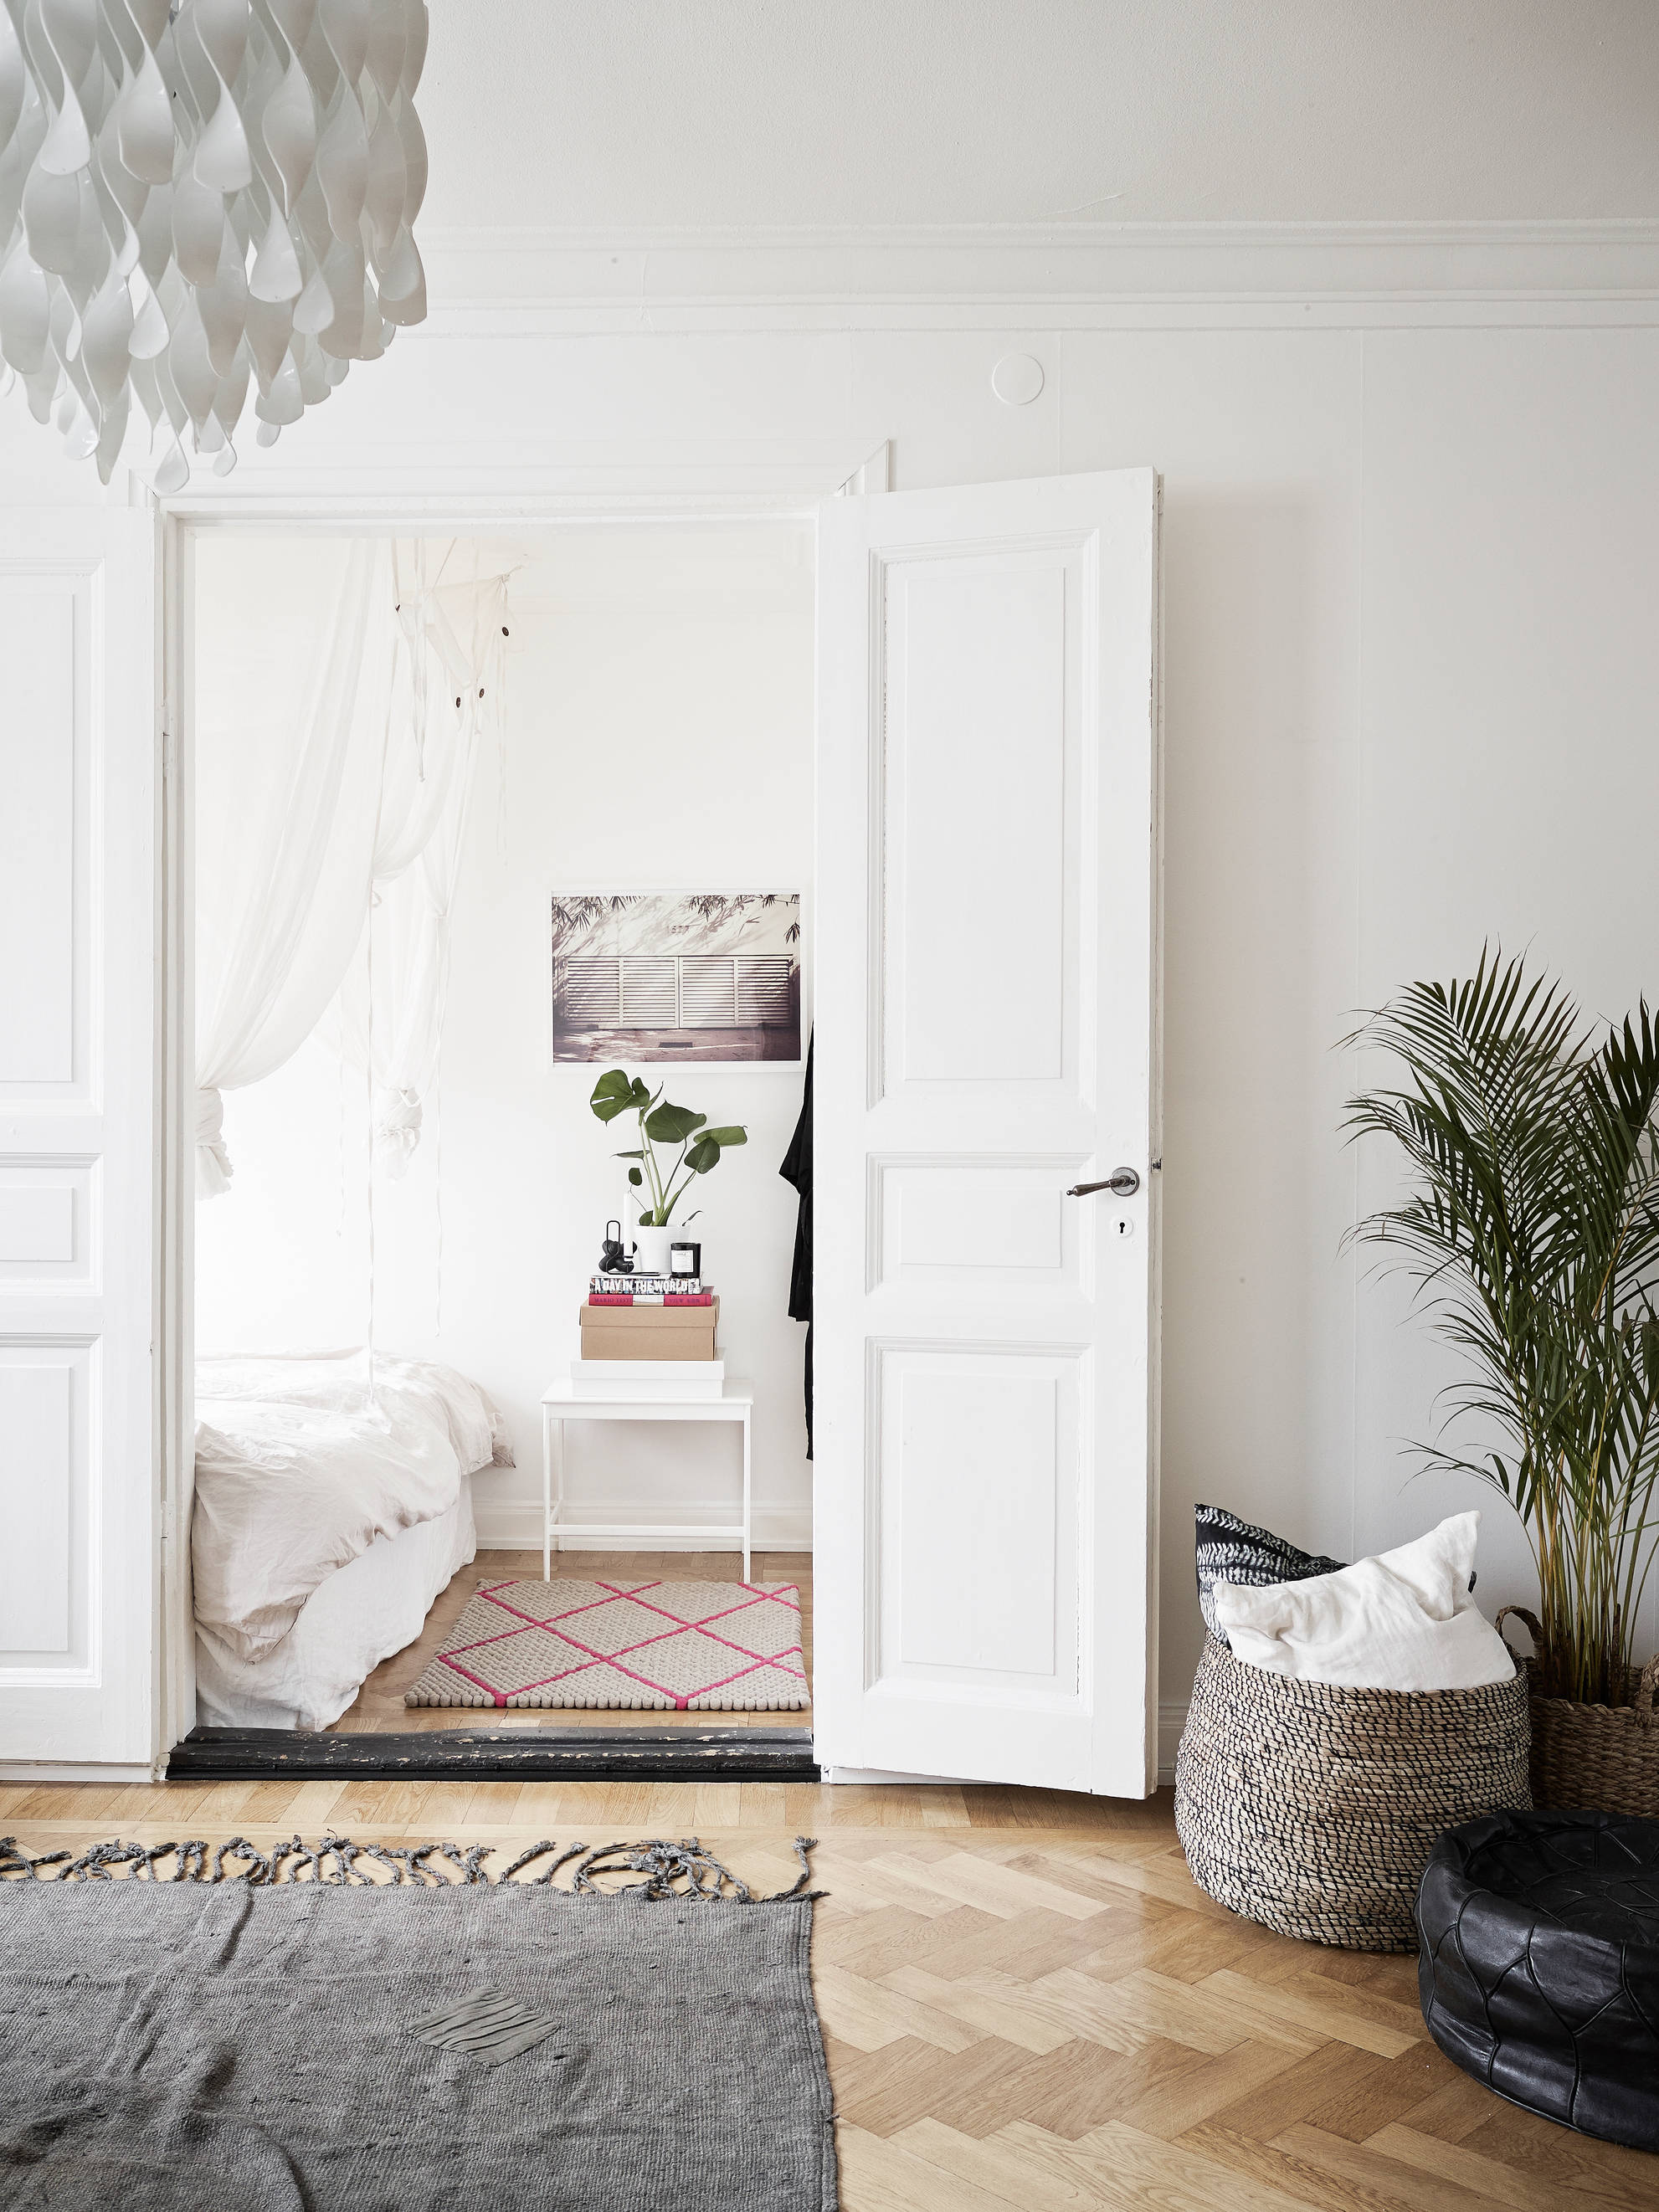 Dusty hues and and a dreamy bedroom   coco lapine designcoco ...